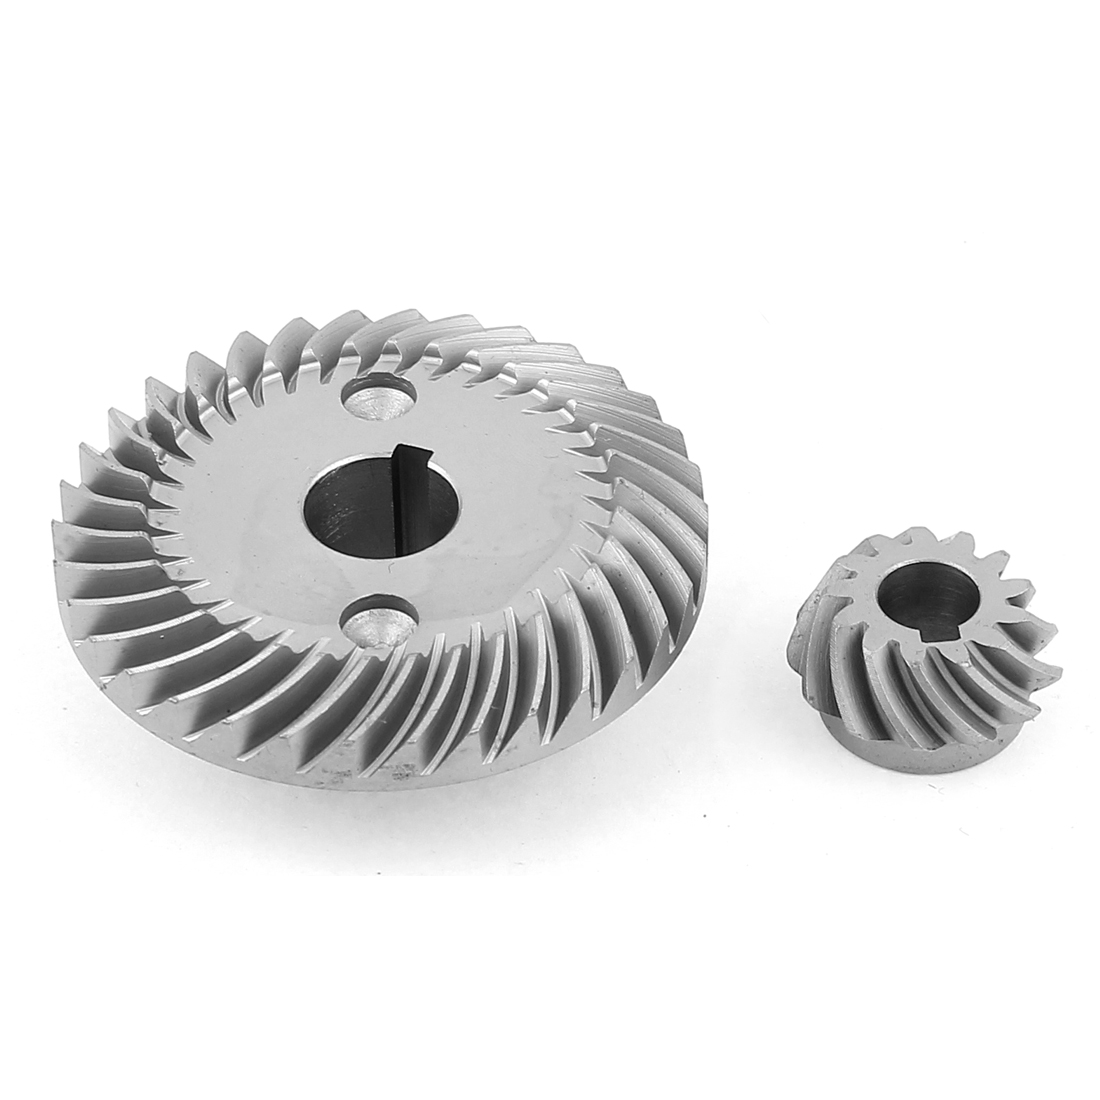 Slot Hole Metal Spiral Bevel Gear Pinion Set for Makita 9500 Angle Grinder